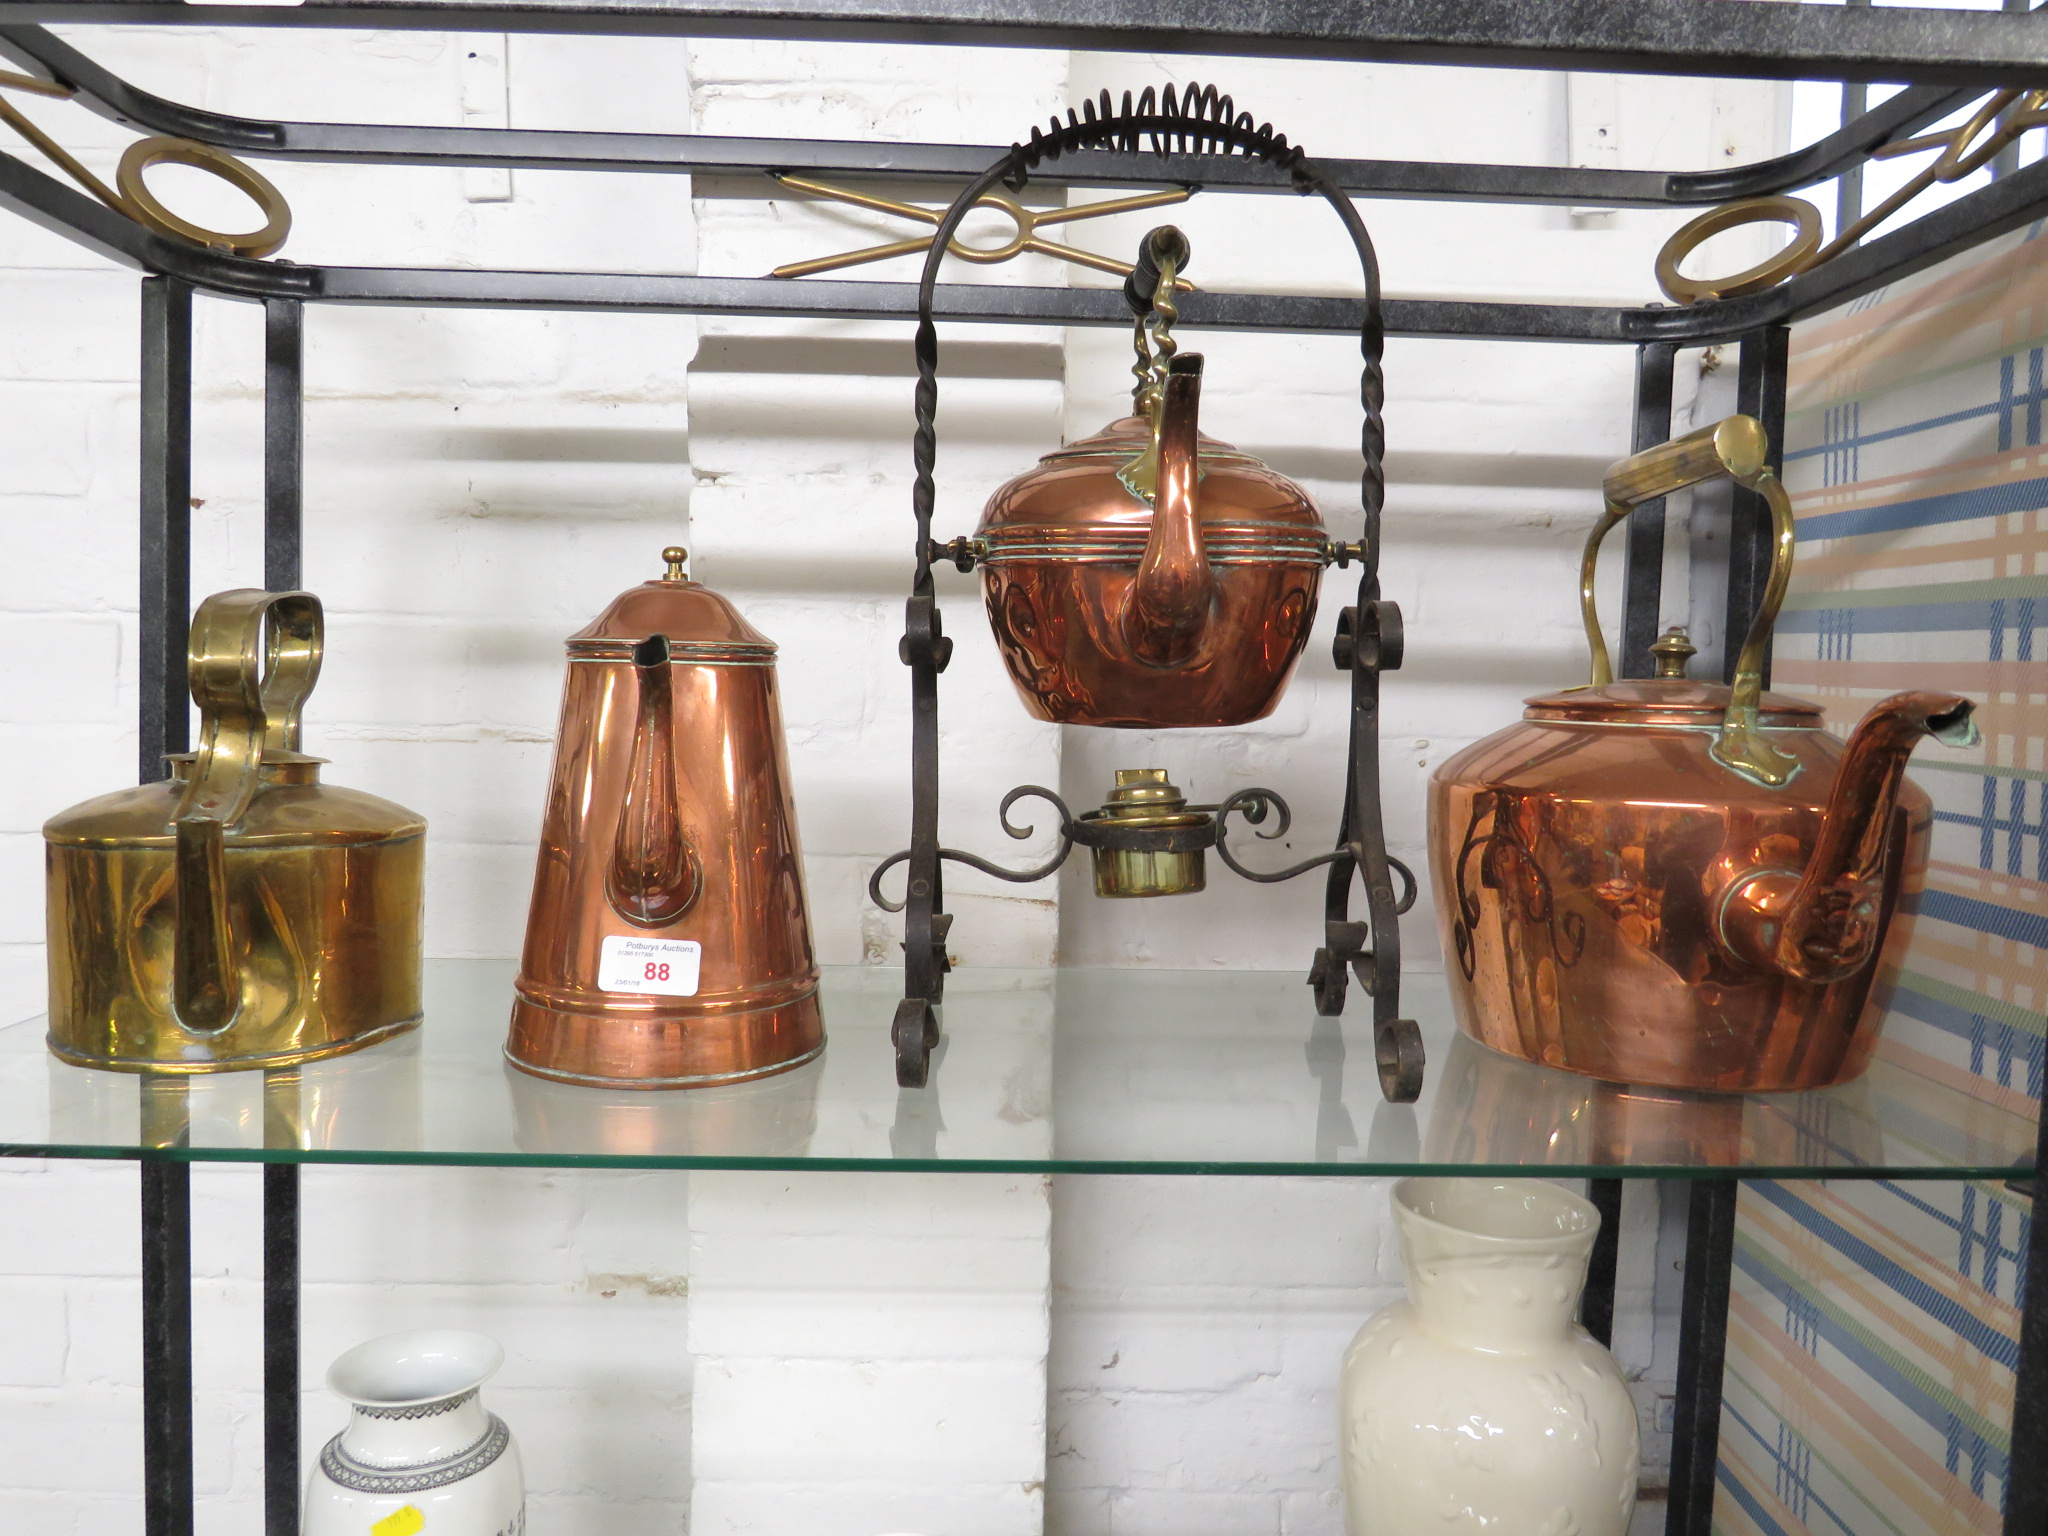 COPPER SPIRIT KETTLE ON STAND, BRASS KETTLE, COPPER KETTLE AND TEAPOT